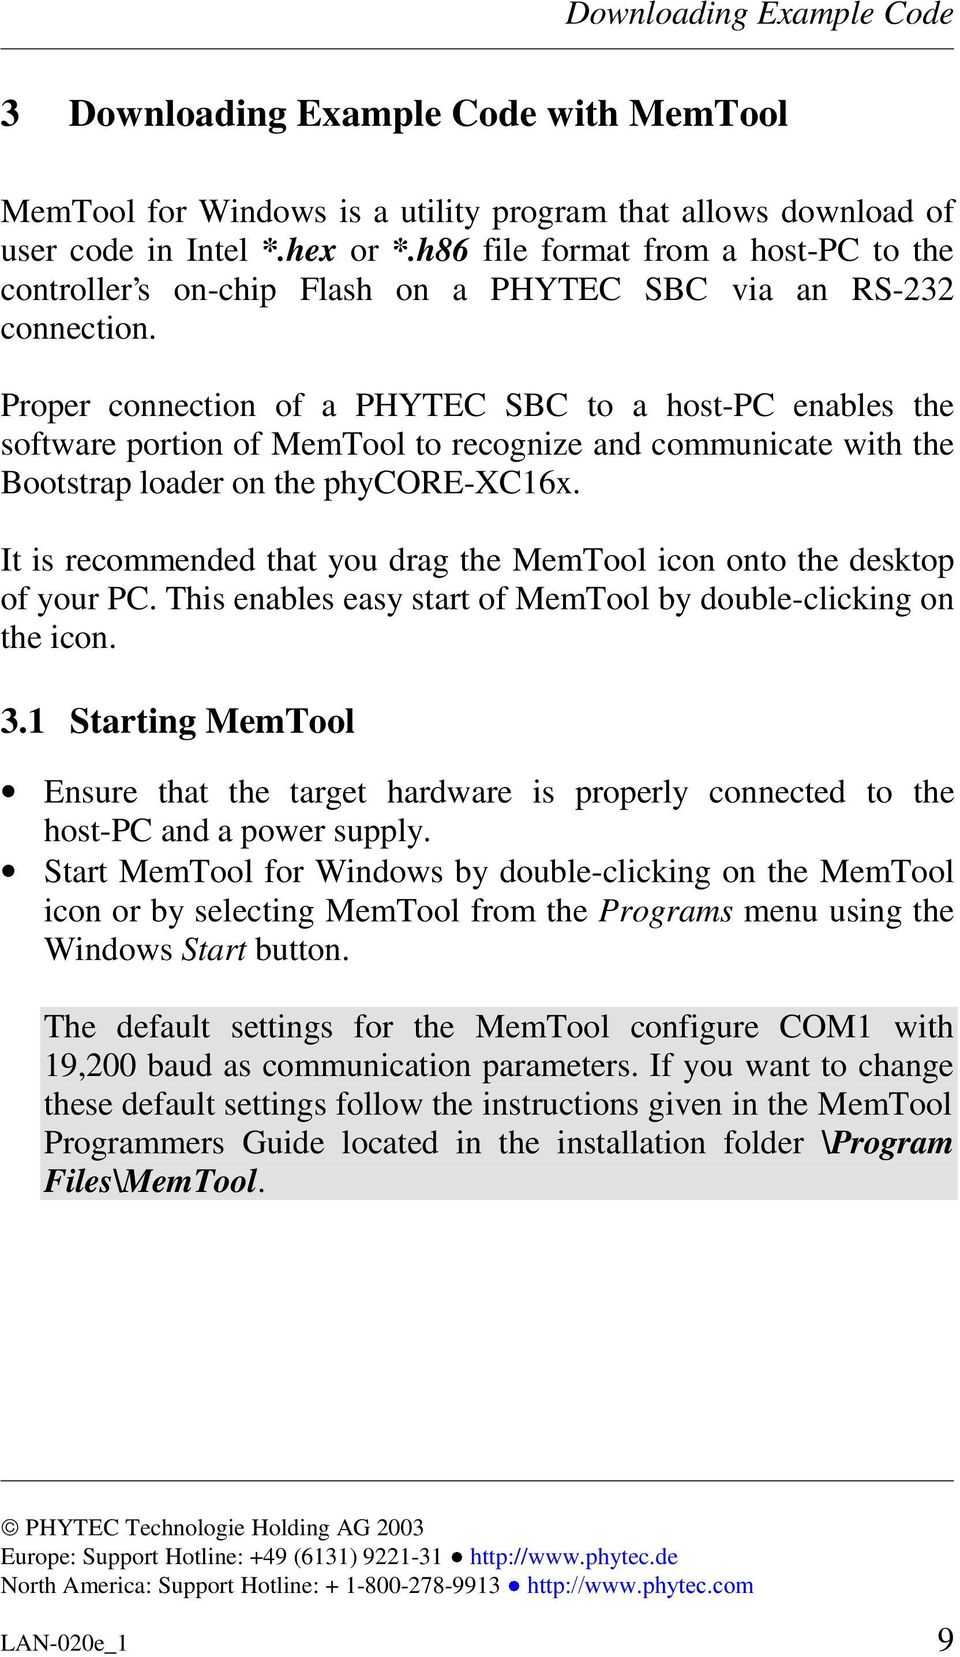 Proper connection of a PHYTEC SBC to a host-pc enables the software portion of MemTool to recognize and communicate with the Bootstrap loader on the phycore-xc16x.